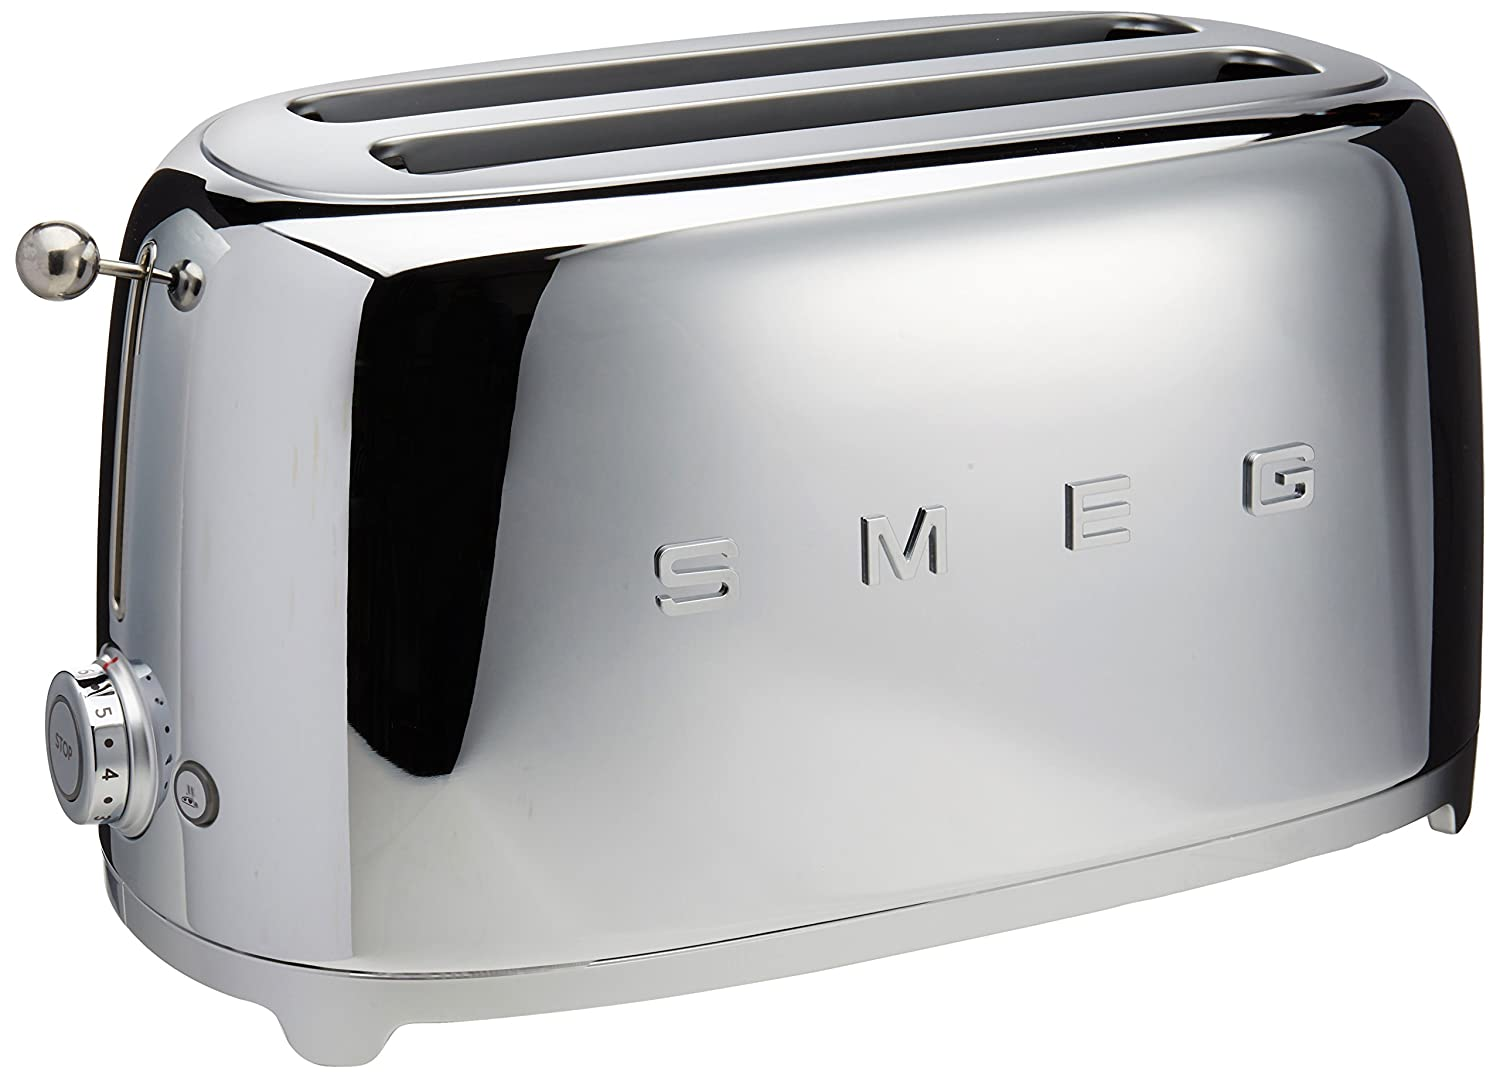 Smeg 4-Slice Toaster-Chrome